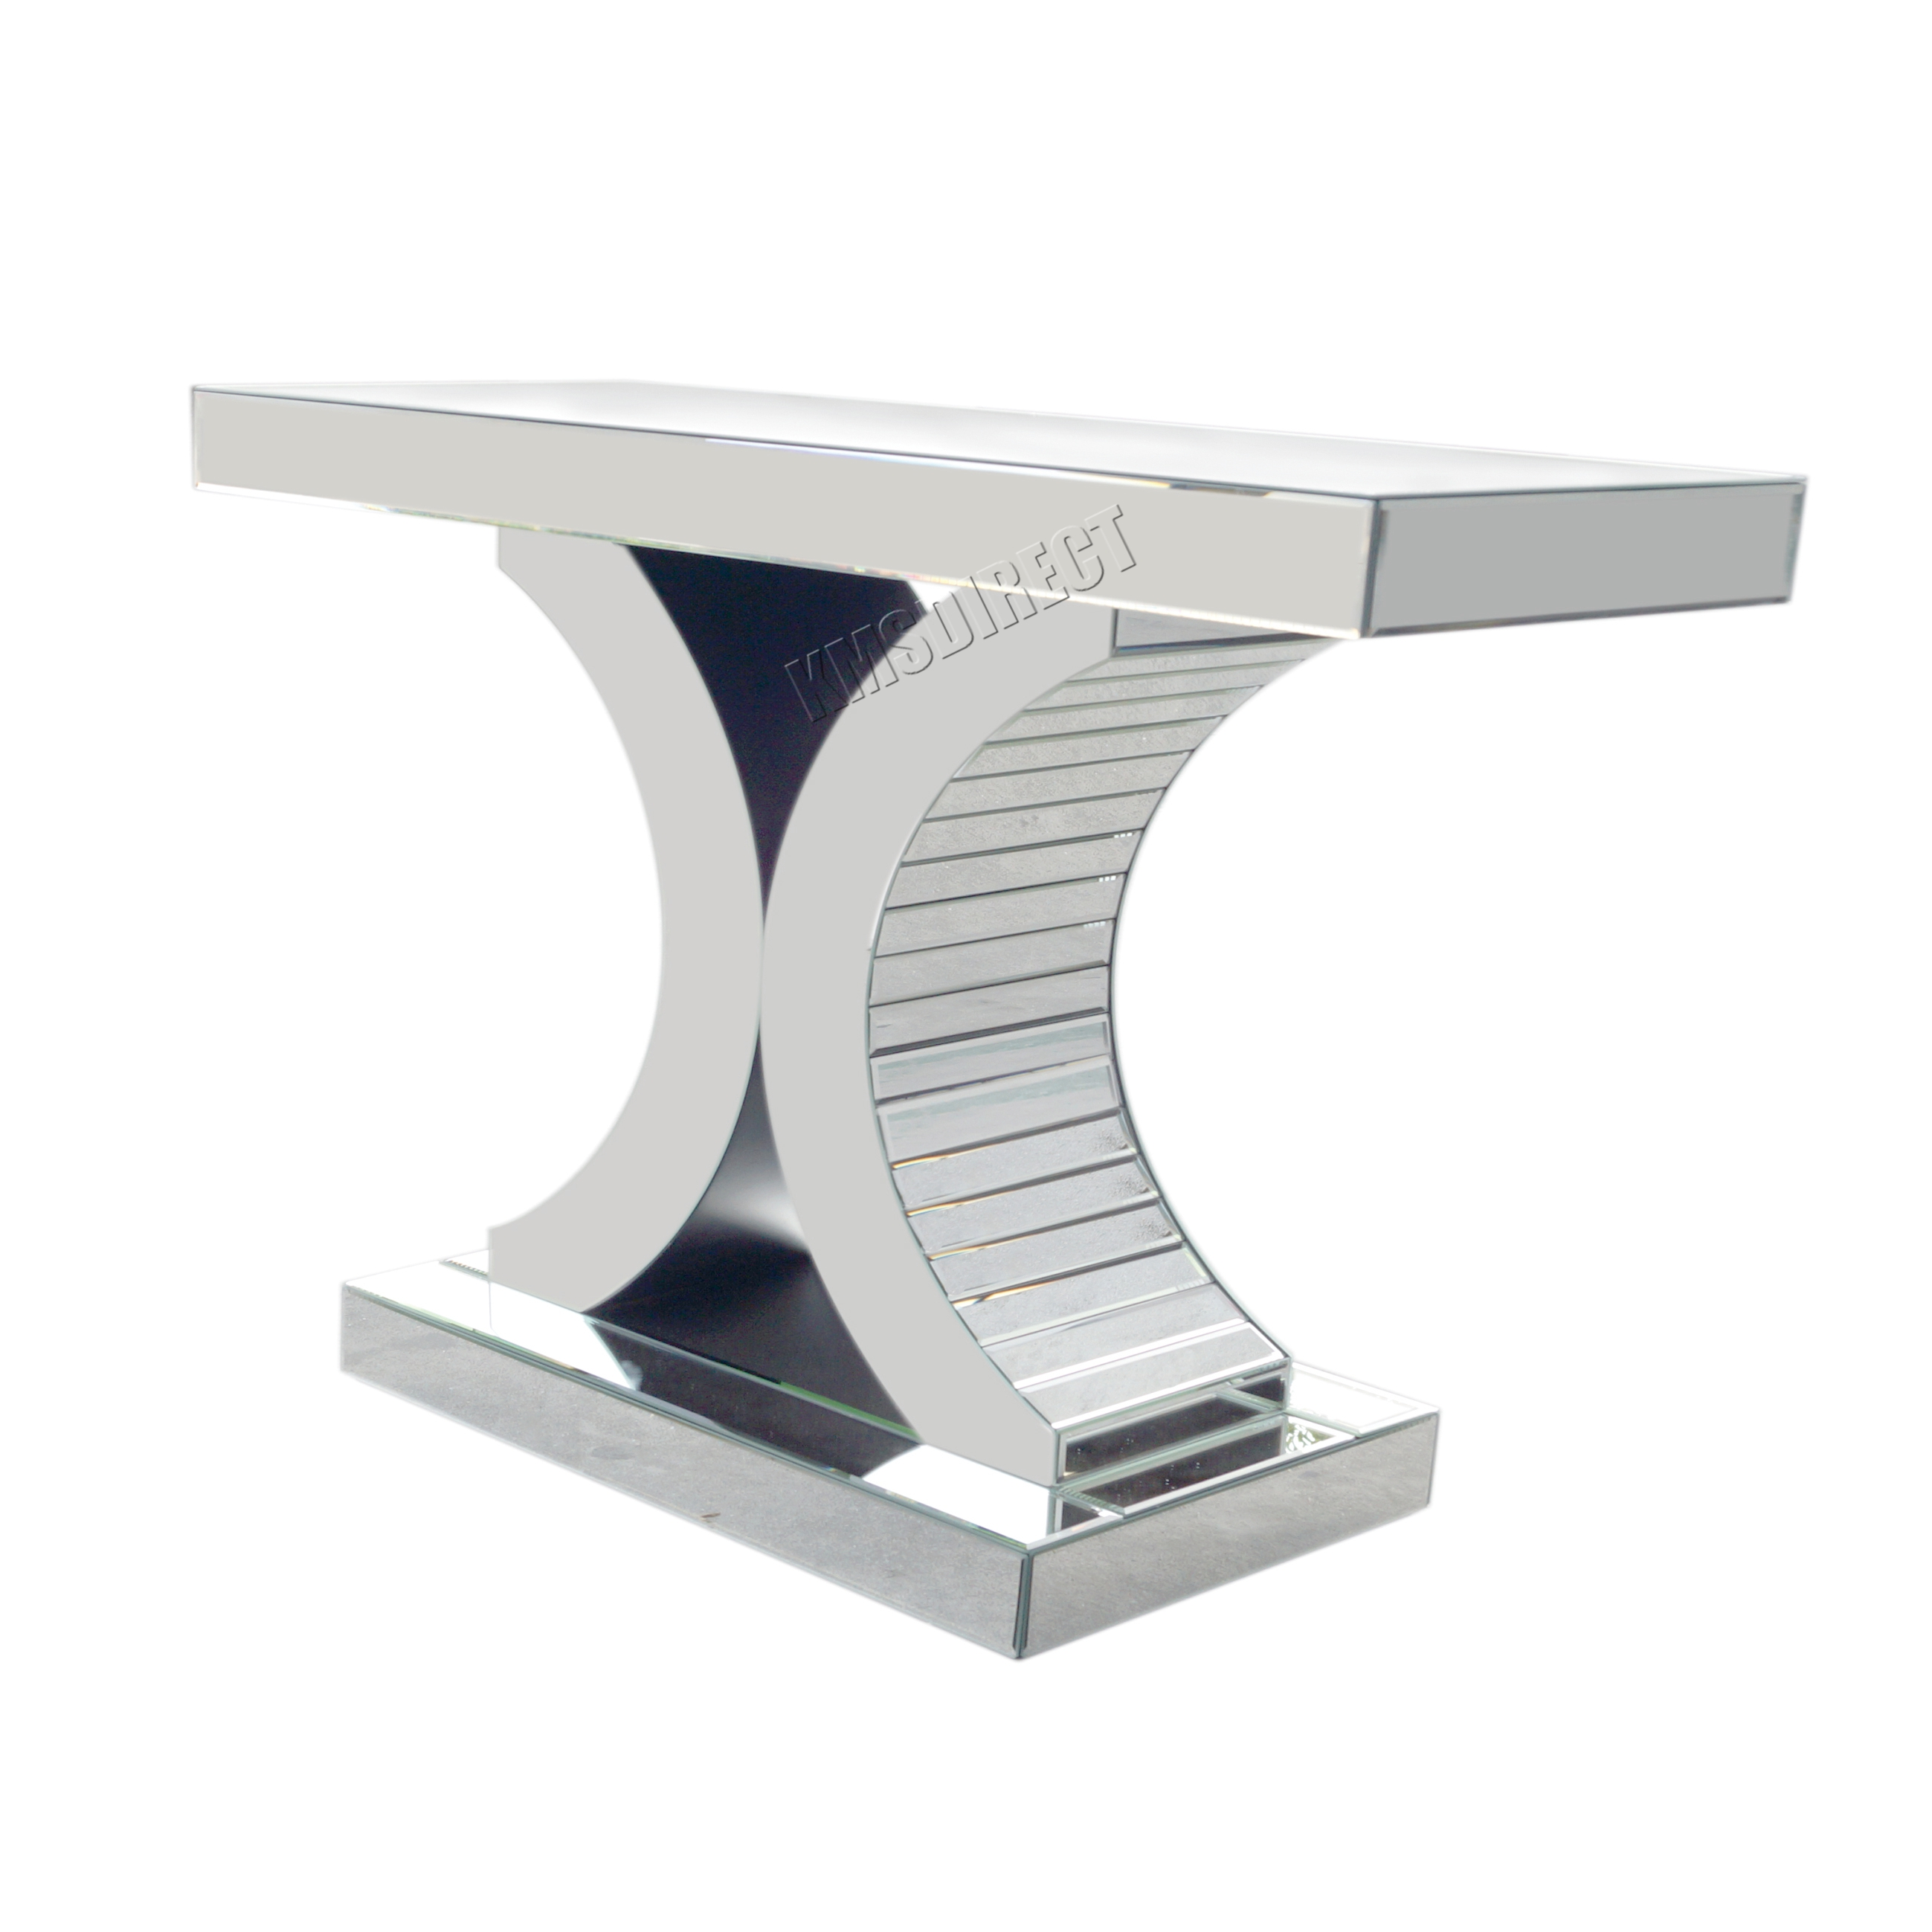 mirror console table. FoxHunter-Mirrored-Furniture-Glass-Table-Console-Desk-Bedroom- Mirror Console Table 0